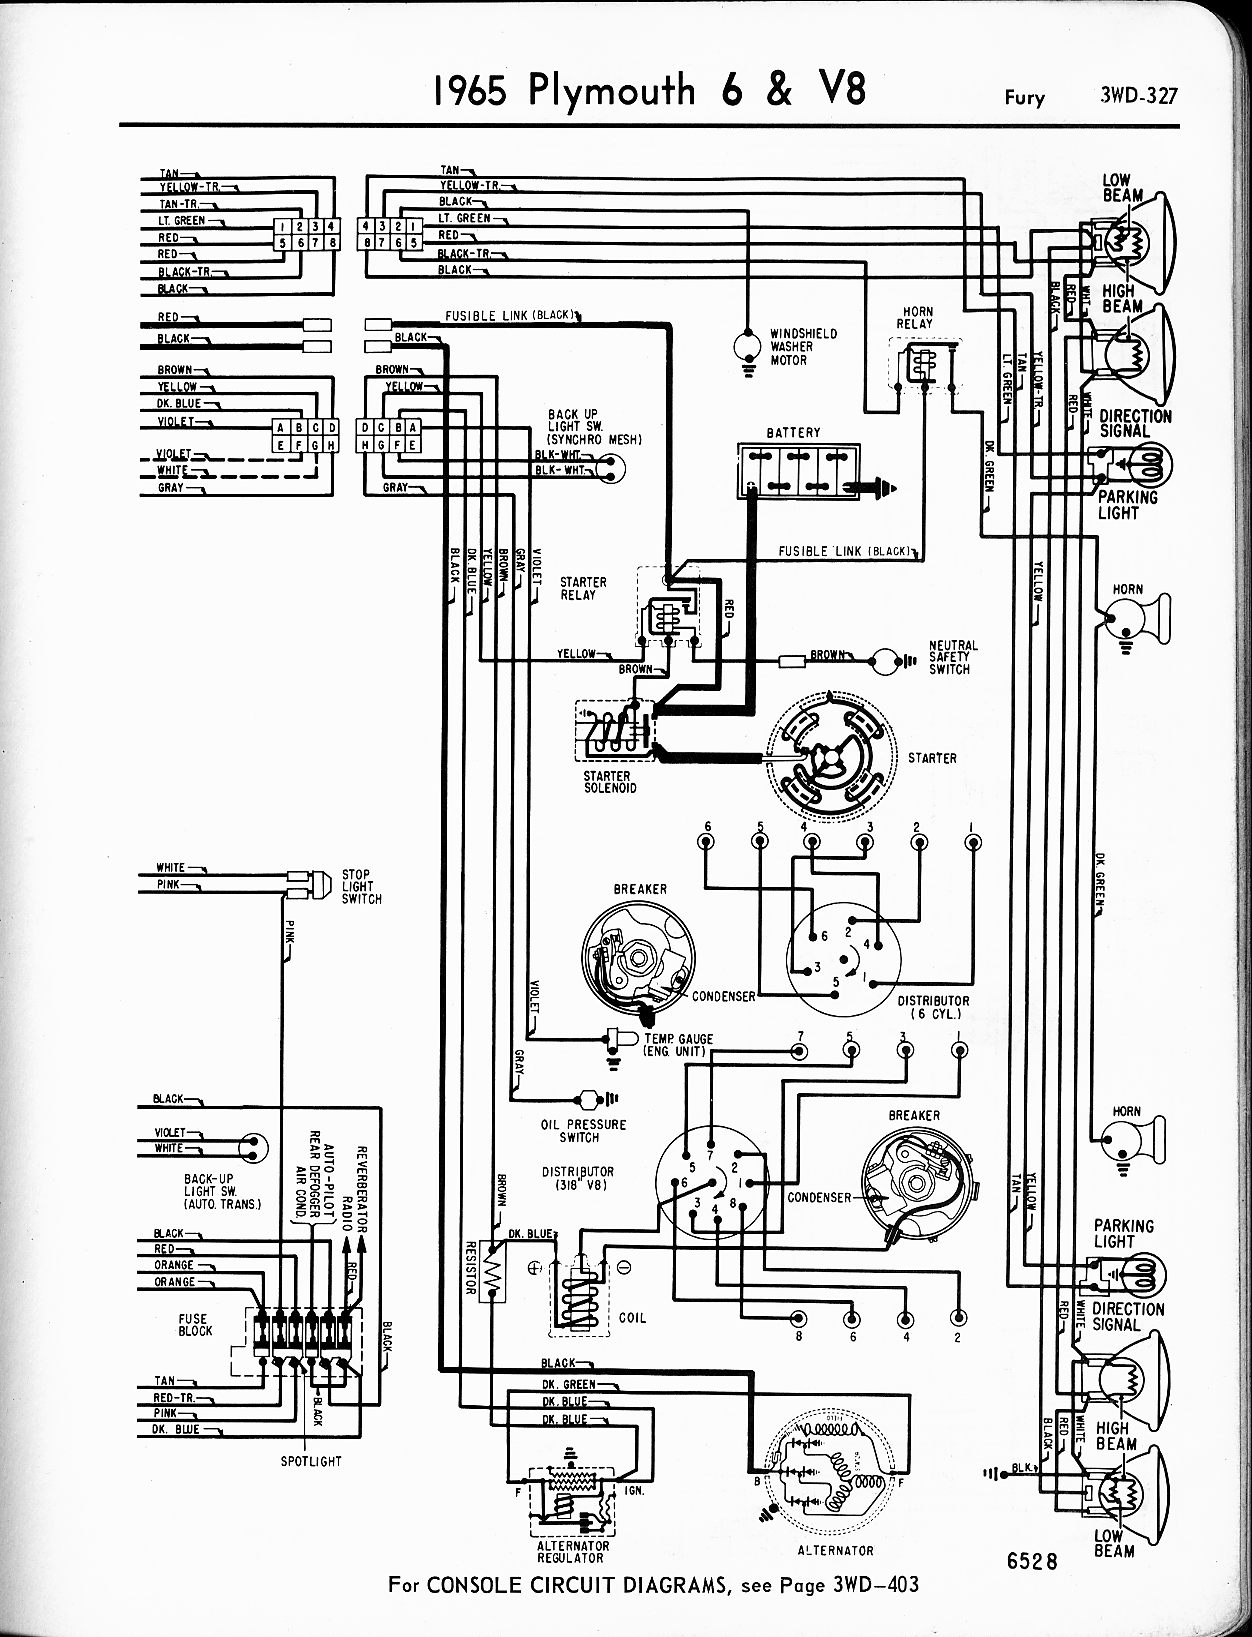 1966 Ford Thunderbird Wiring Diagram Auto Diagrams 1963 Galaxie Barracuda Schematics 1965 Dodge